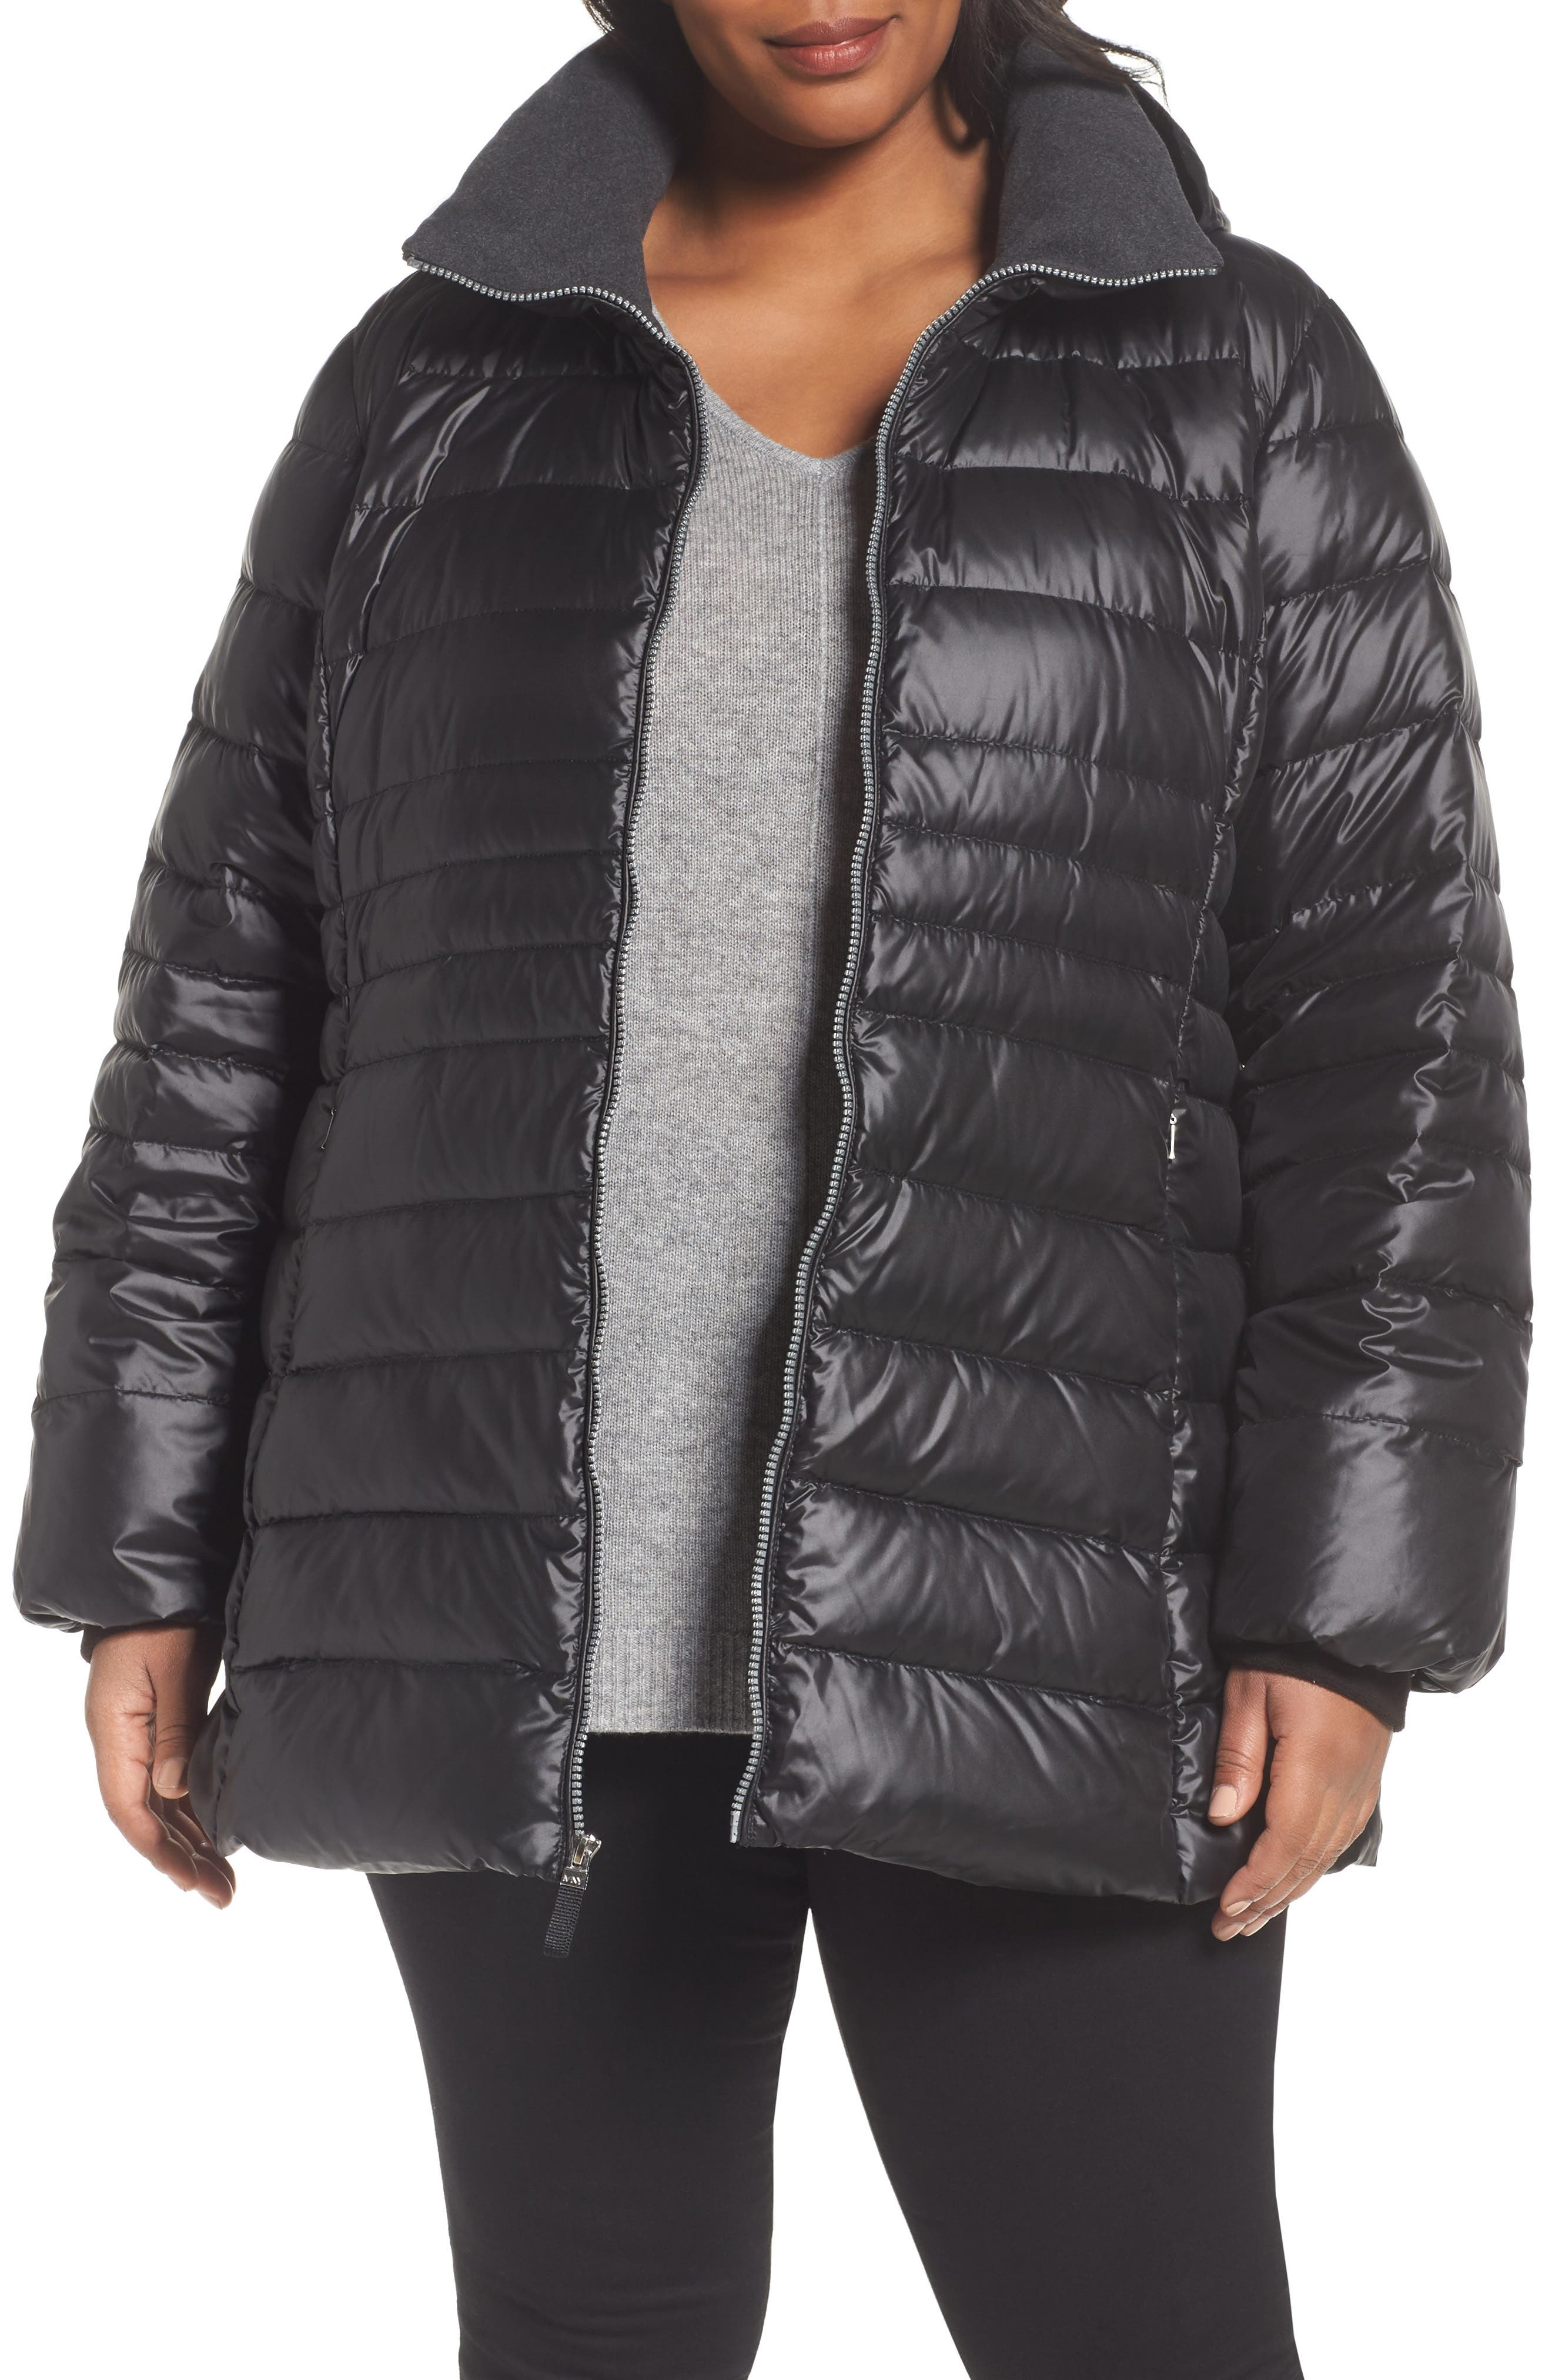 Erin Hooded Down Coat,                         Main,                         color, Black